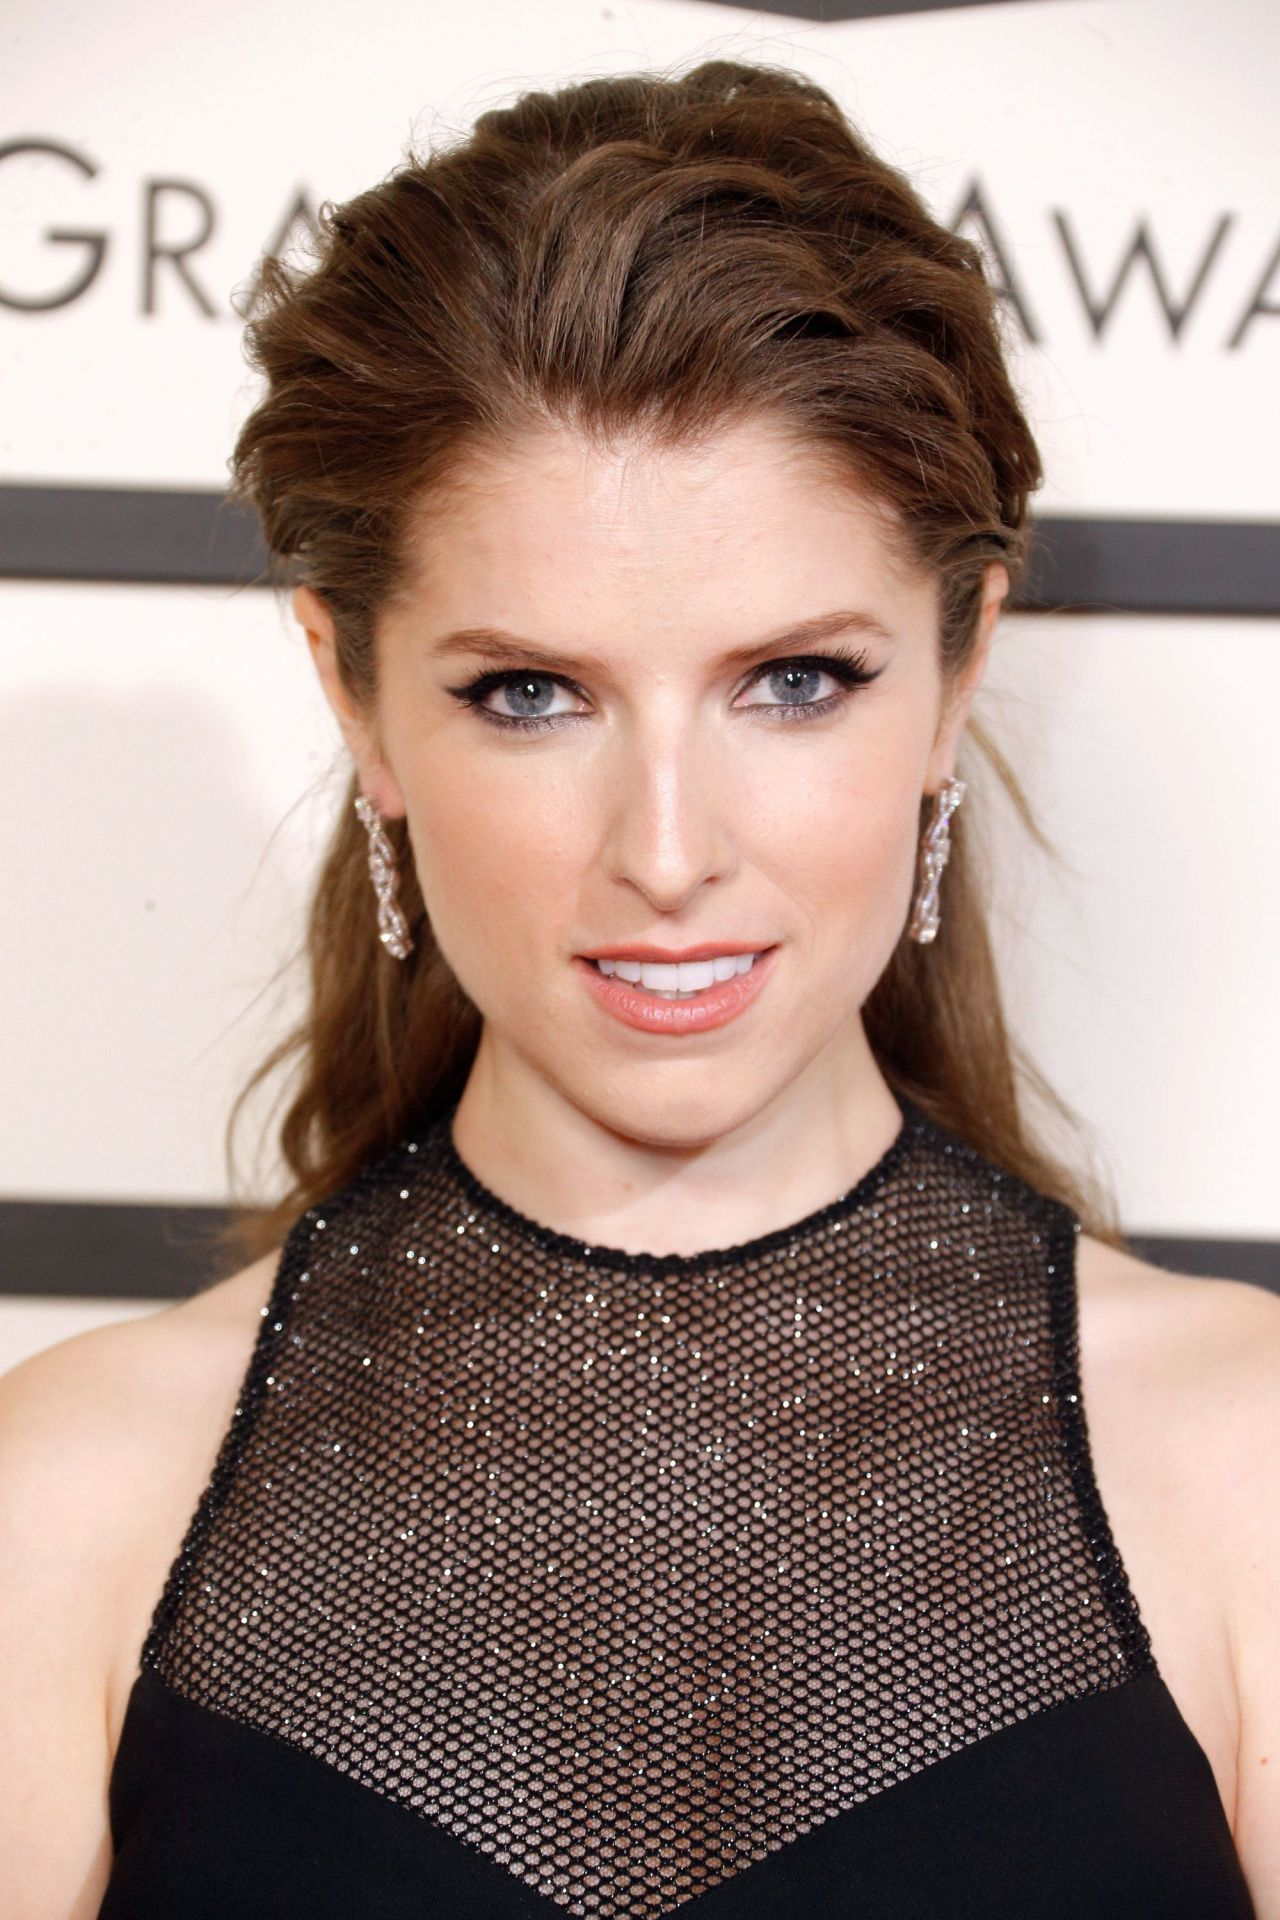 Anna Kendrick – 2016 Grammy Awards in Los Angeles, CA Anna Kendrick